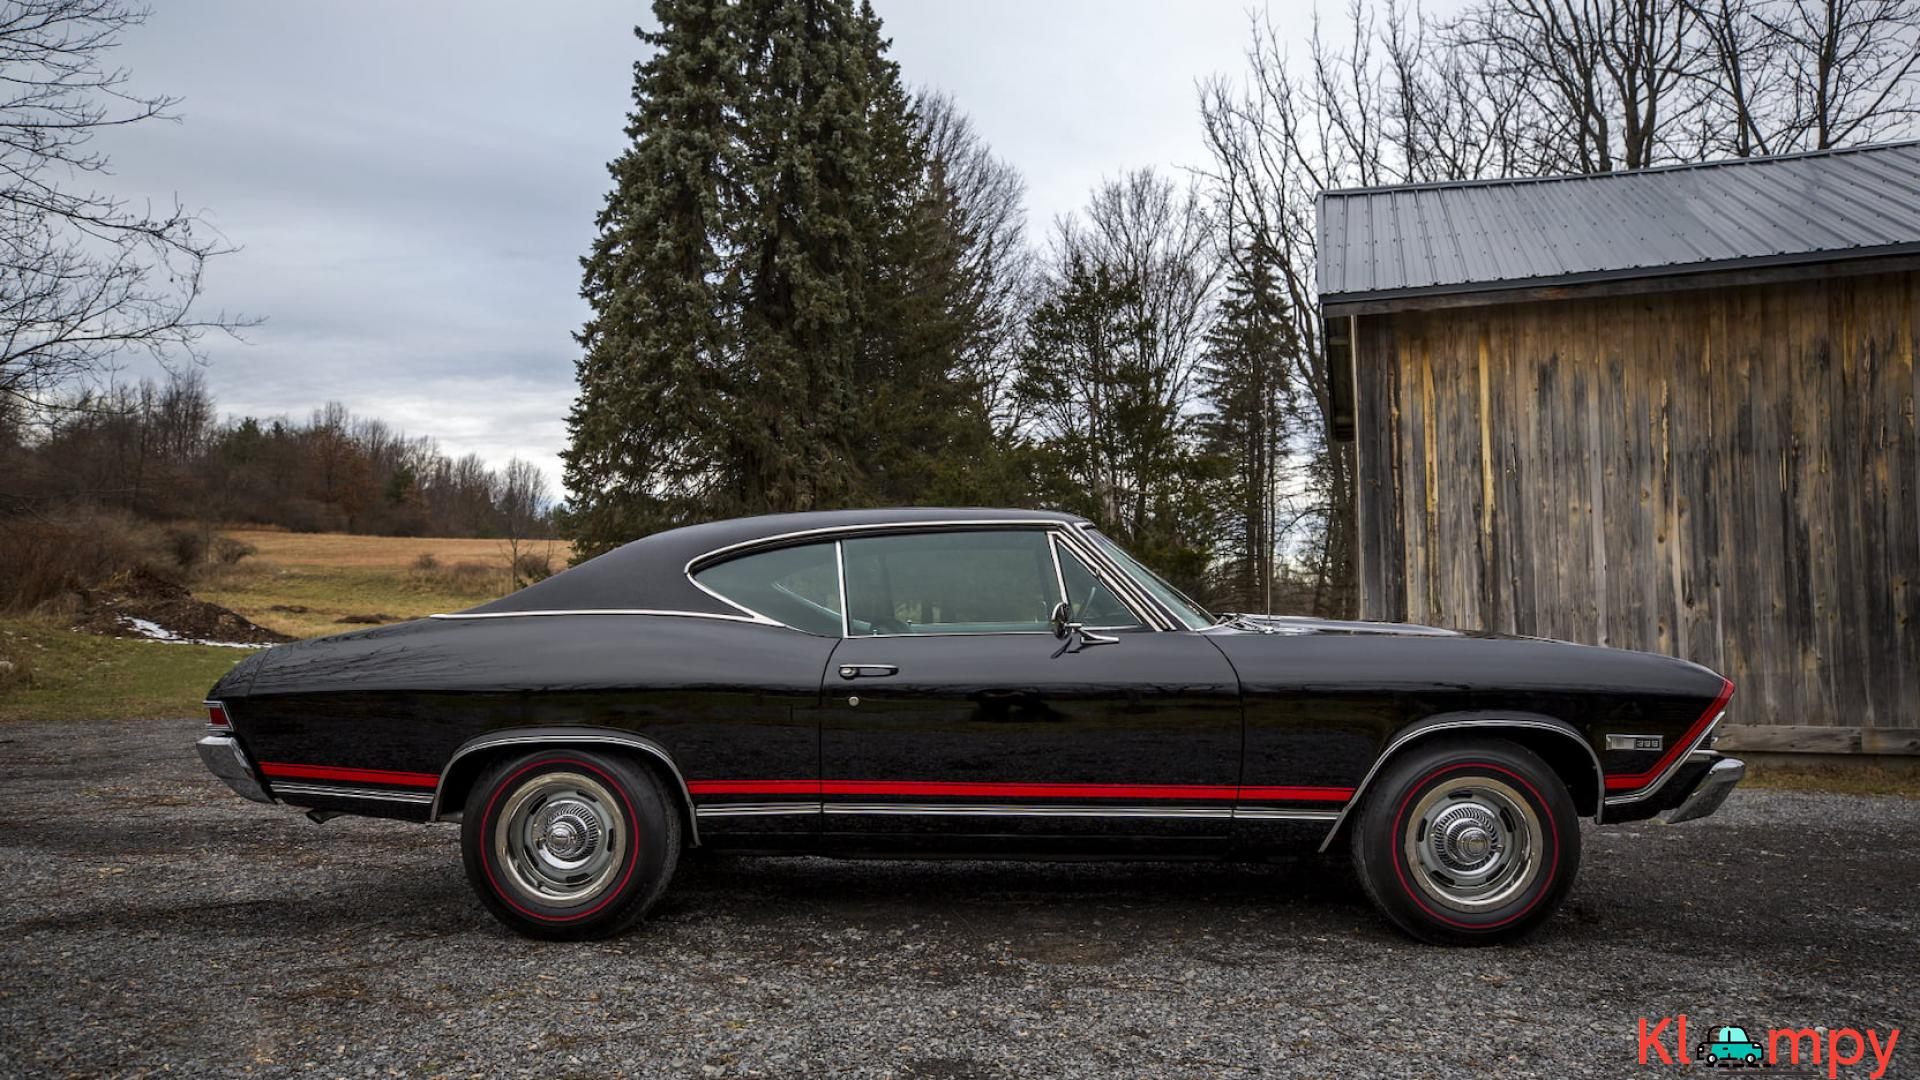 1968 Chevrolet Chevelle SS 396 Matching Numbers - 9/15